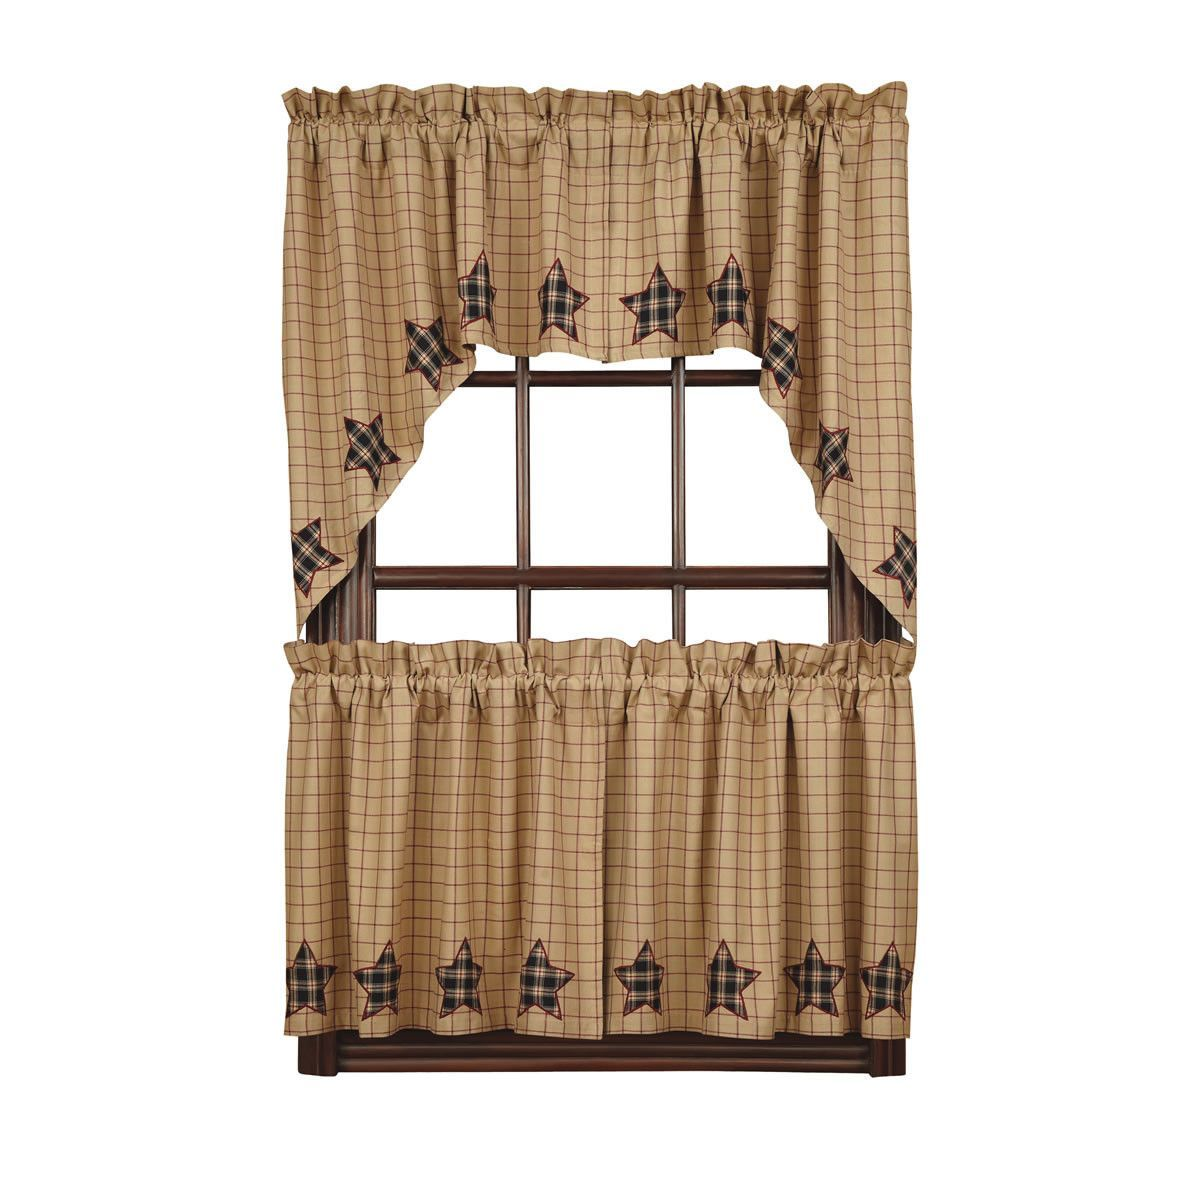 "Bingham Star Applique 36"" Tier Curtain"